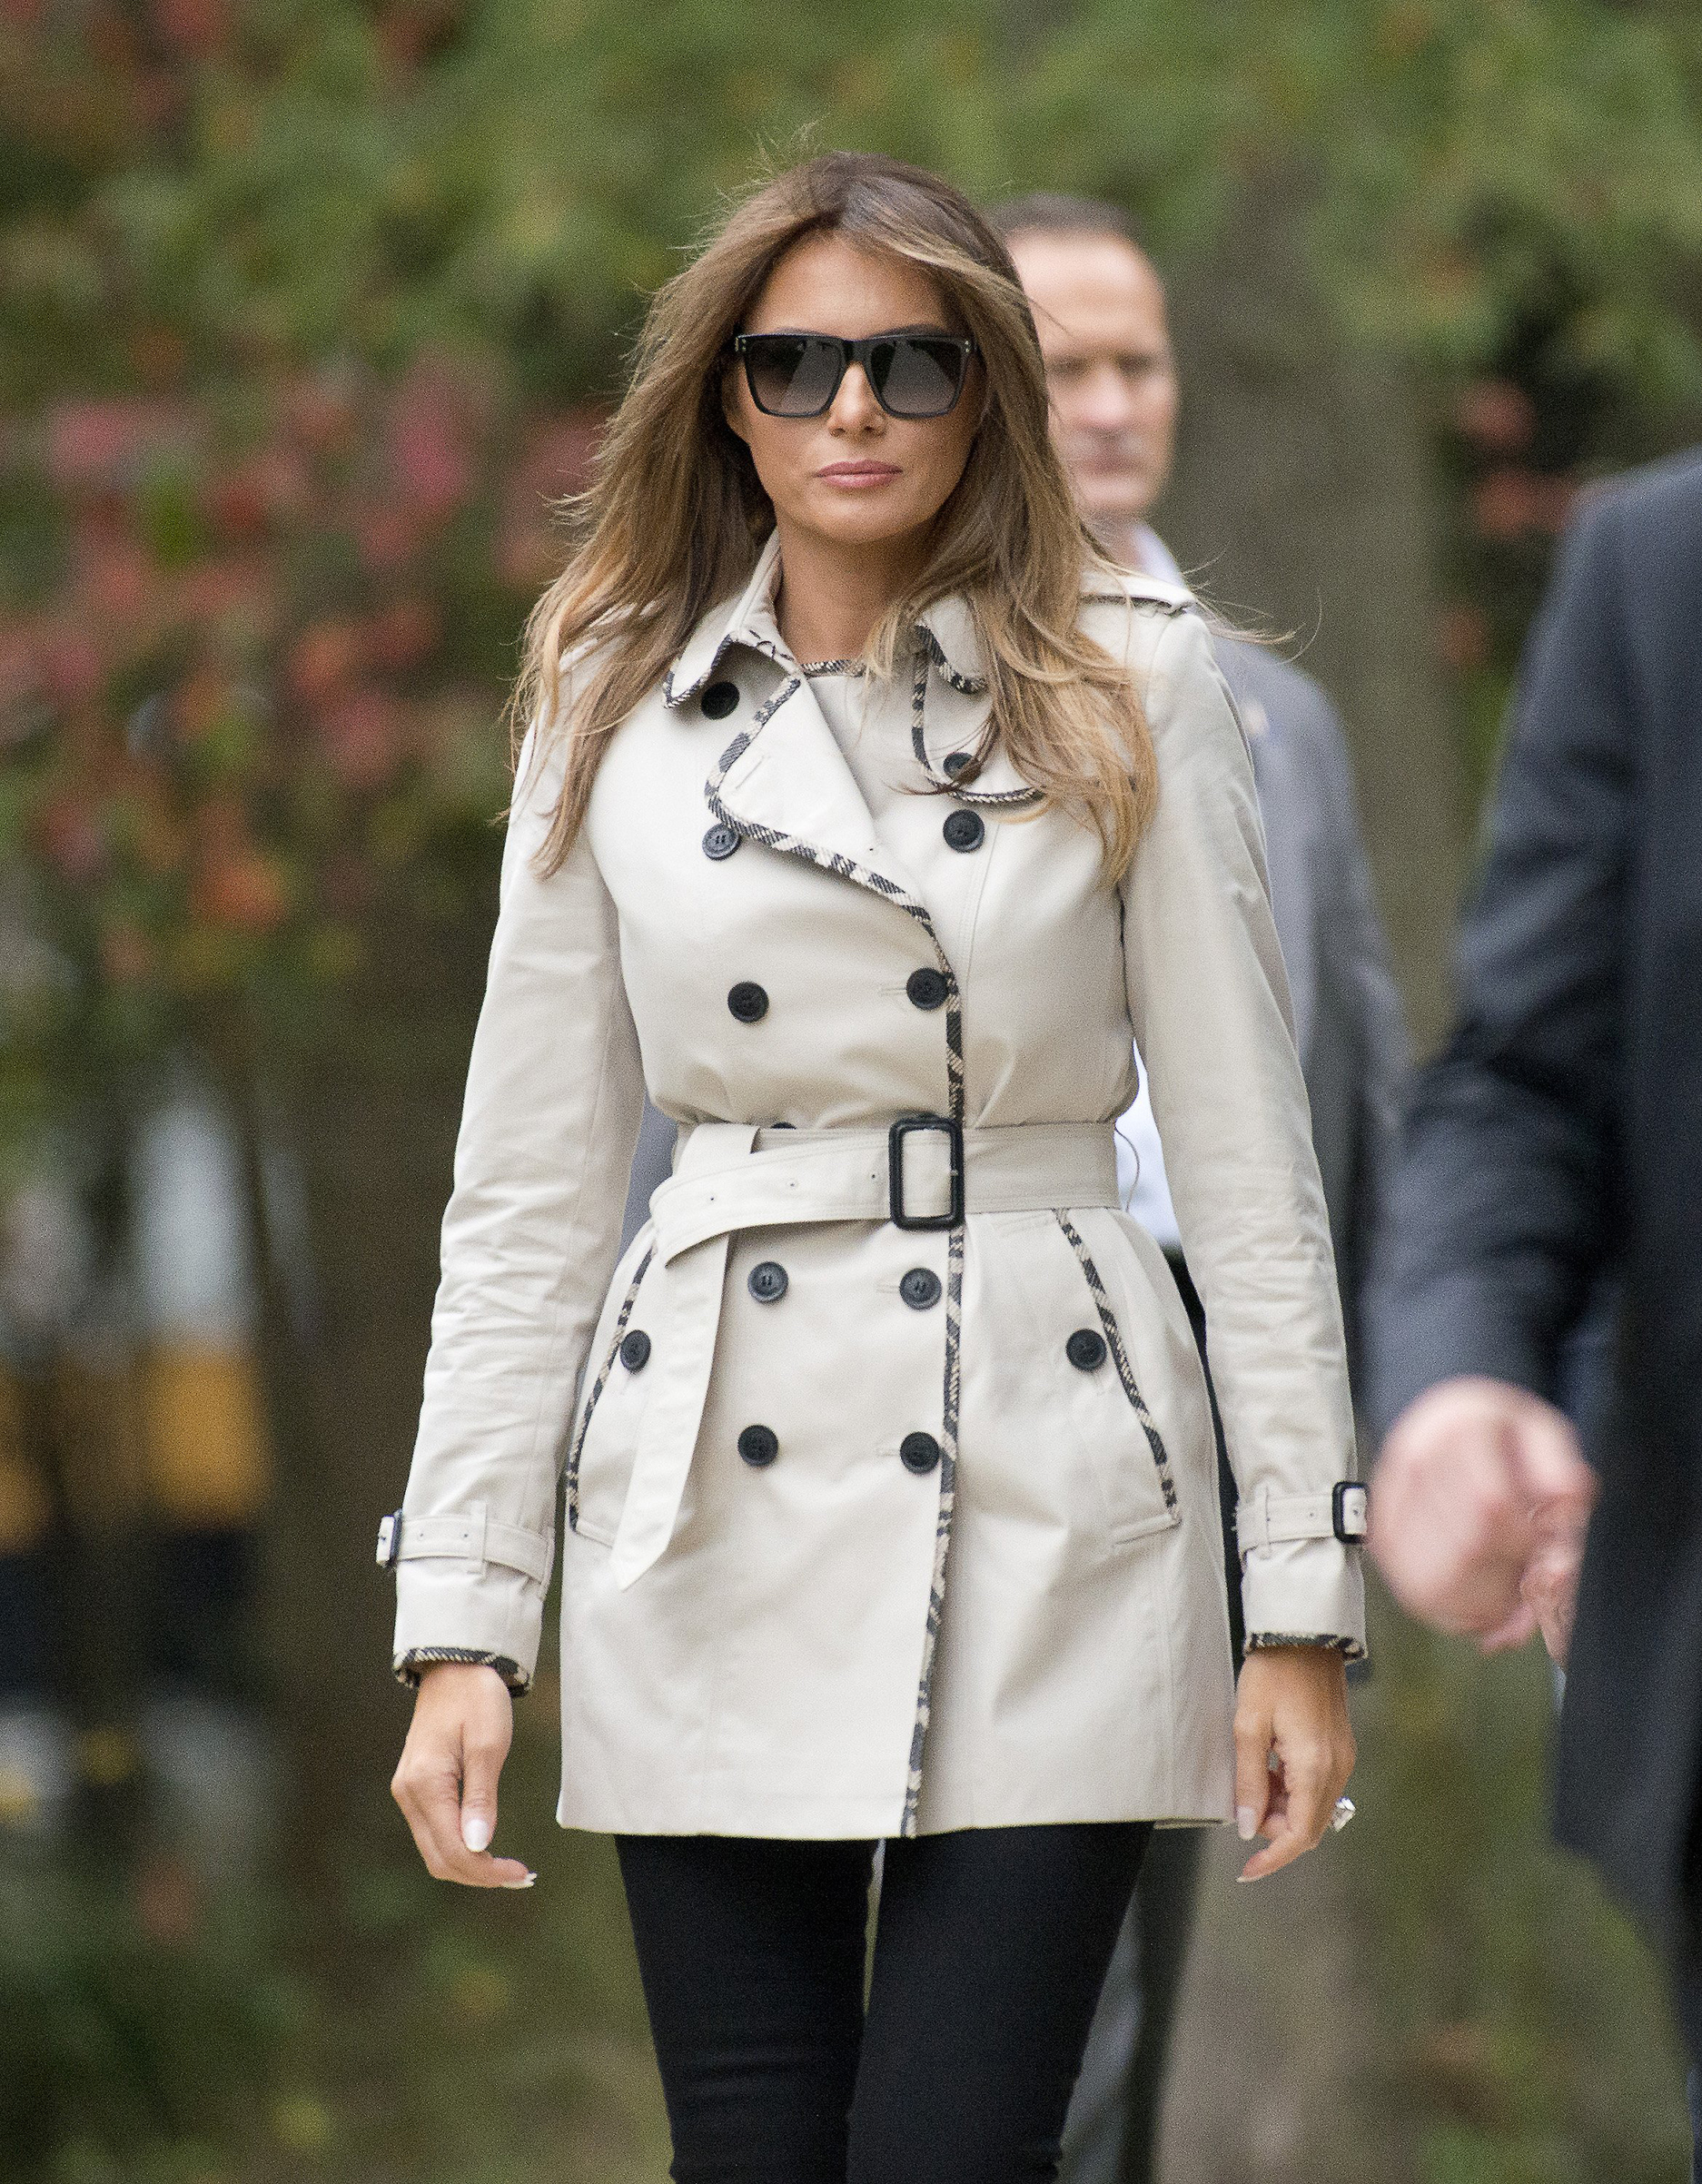 First lady Melania Trump wears a trench coat with trim, as she accompanies her husband on a tour of the U.S. Secret Service James J. Rowley Training Center Oct.13, 2017 in Beltsville, Md.